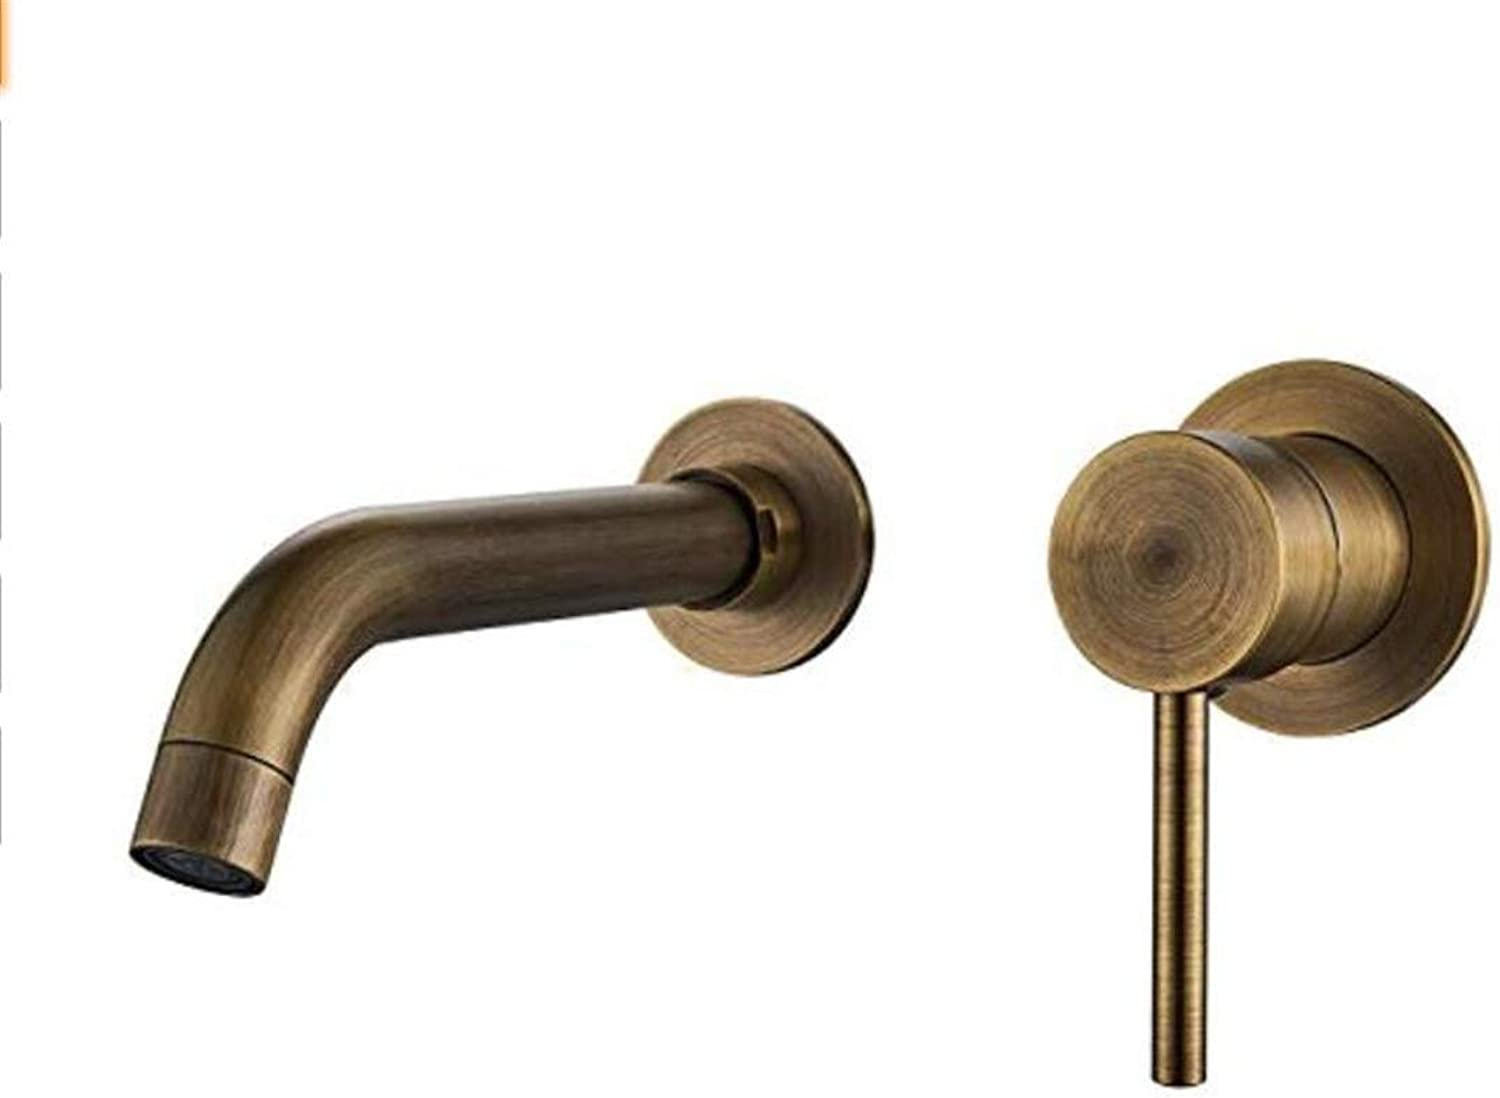 Basin Mixer Sink Taps Bathroom Sink Mixer Taps Antique Brass Single Handle Mixer Bathroom Vanity Sink Faucet Basin Tap